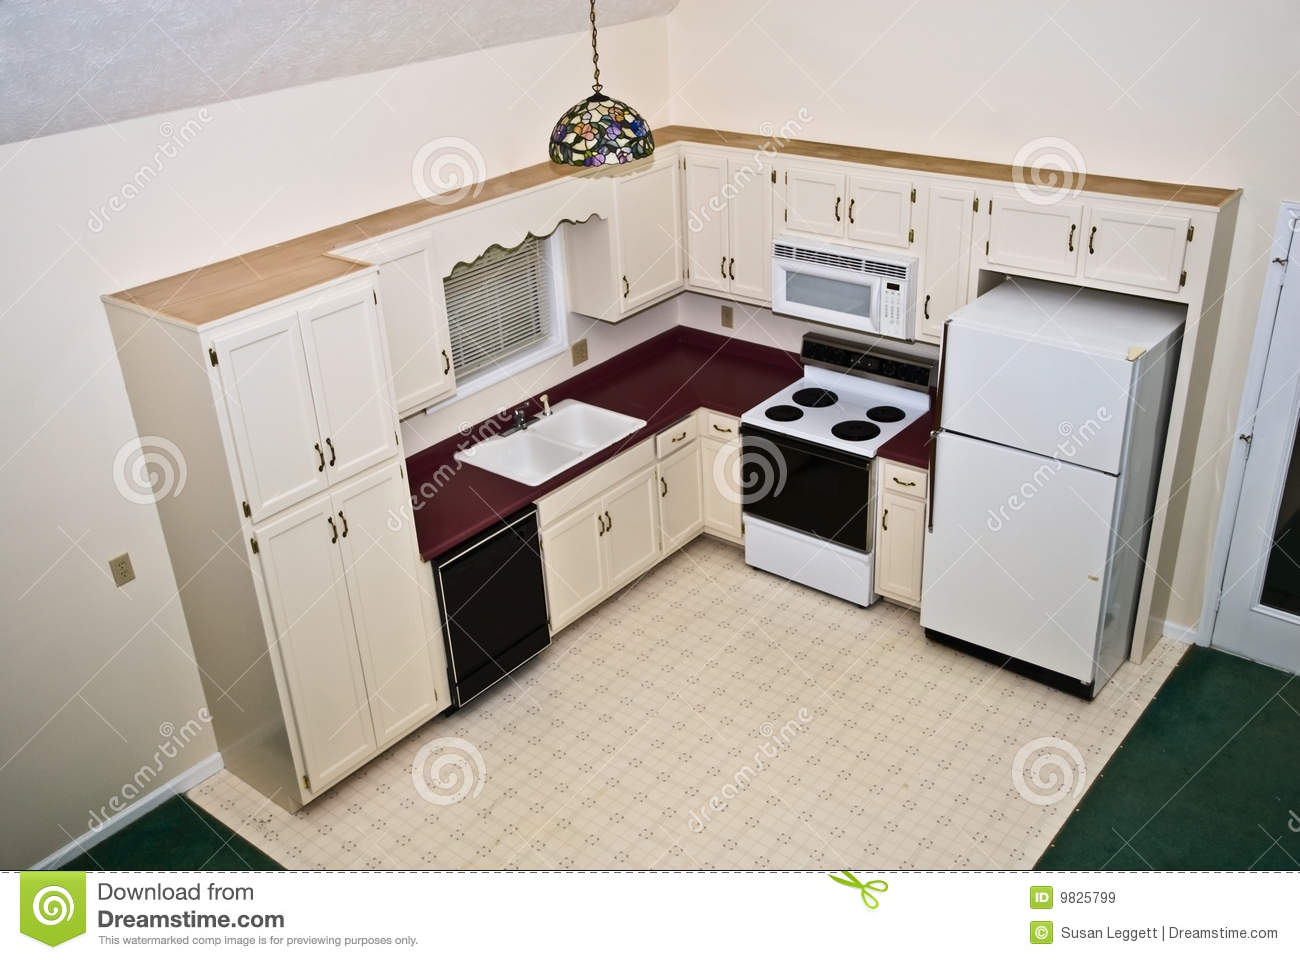 Small kitchen home perspective royalty free stock images for Kitchen designs that stand the test of time